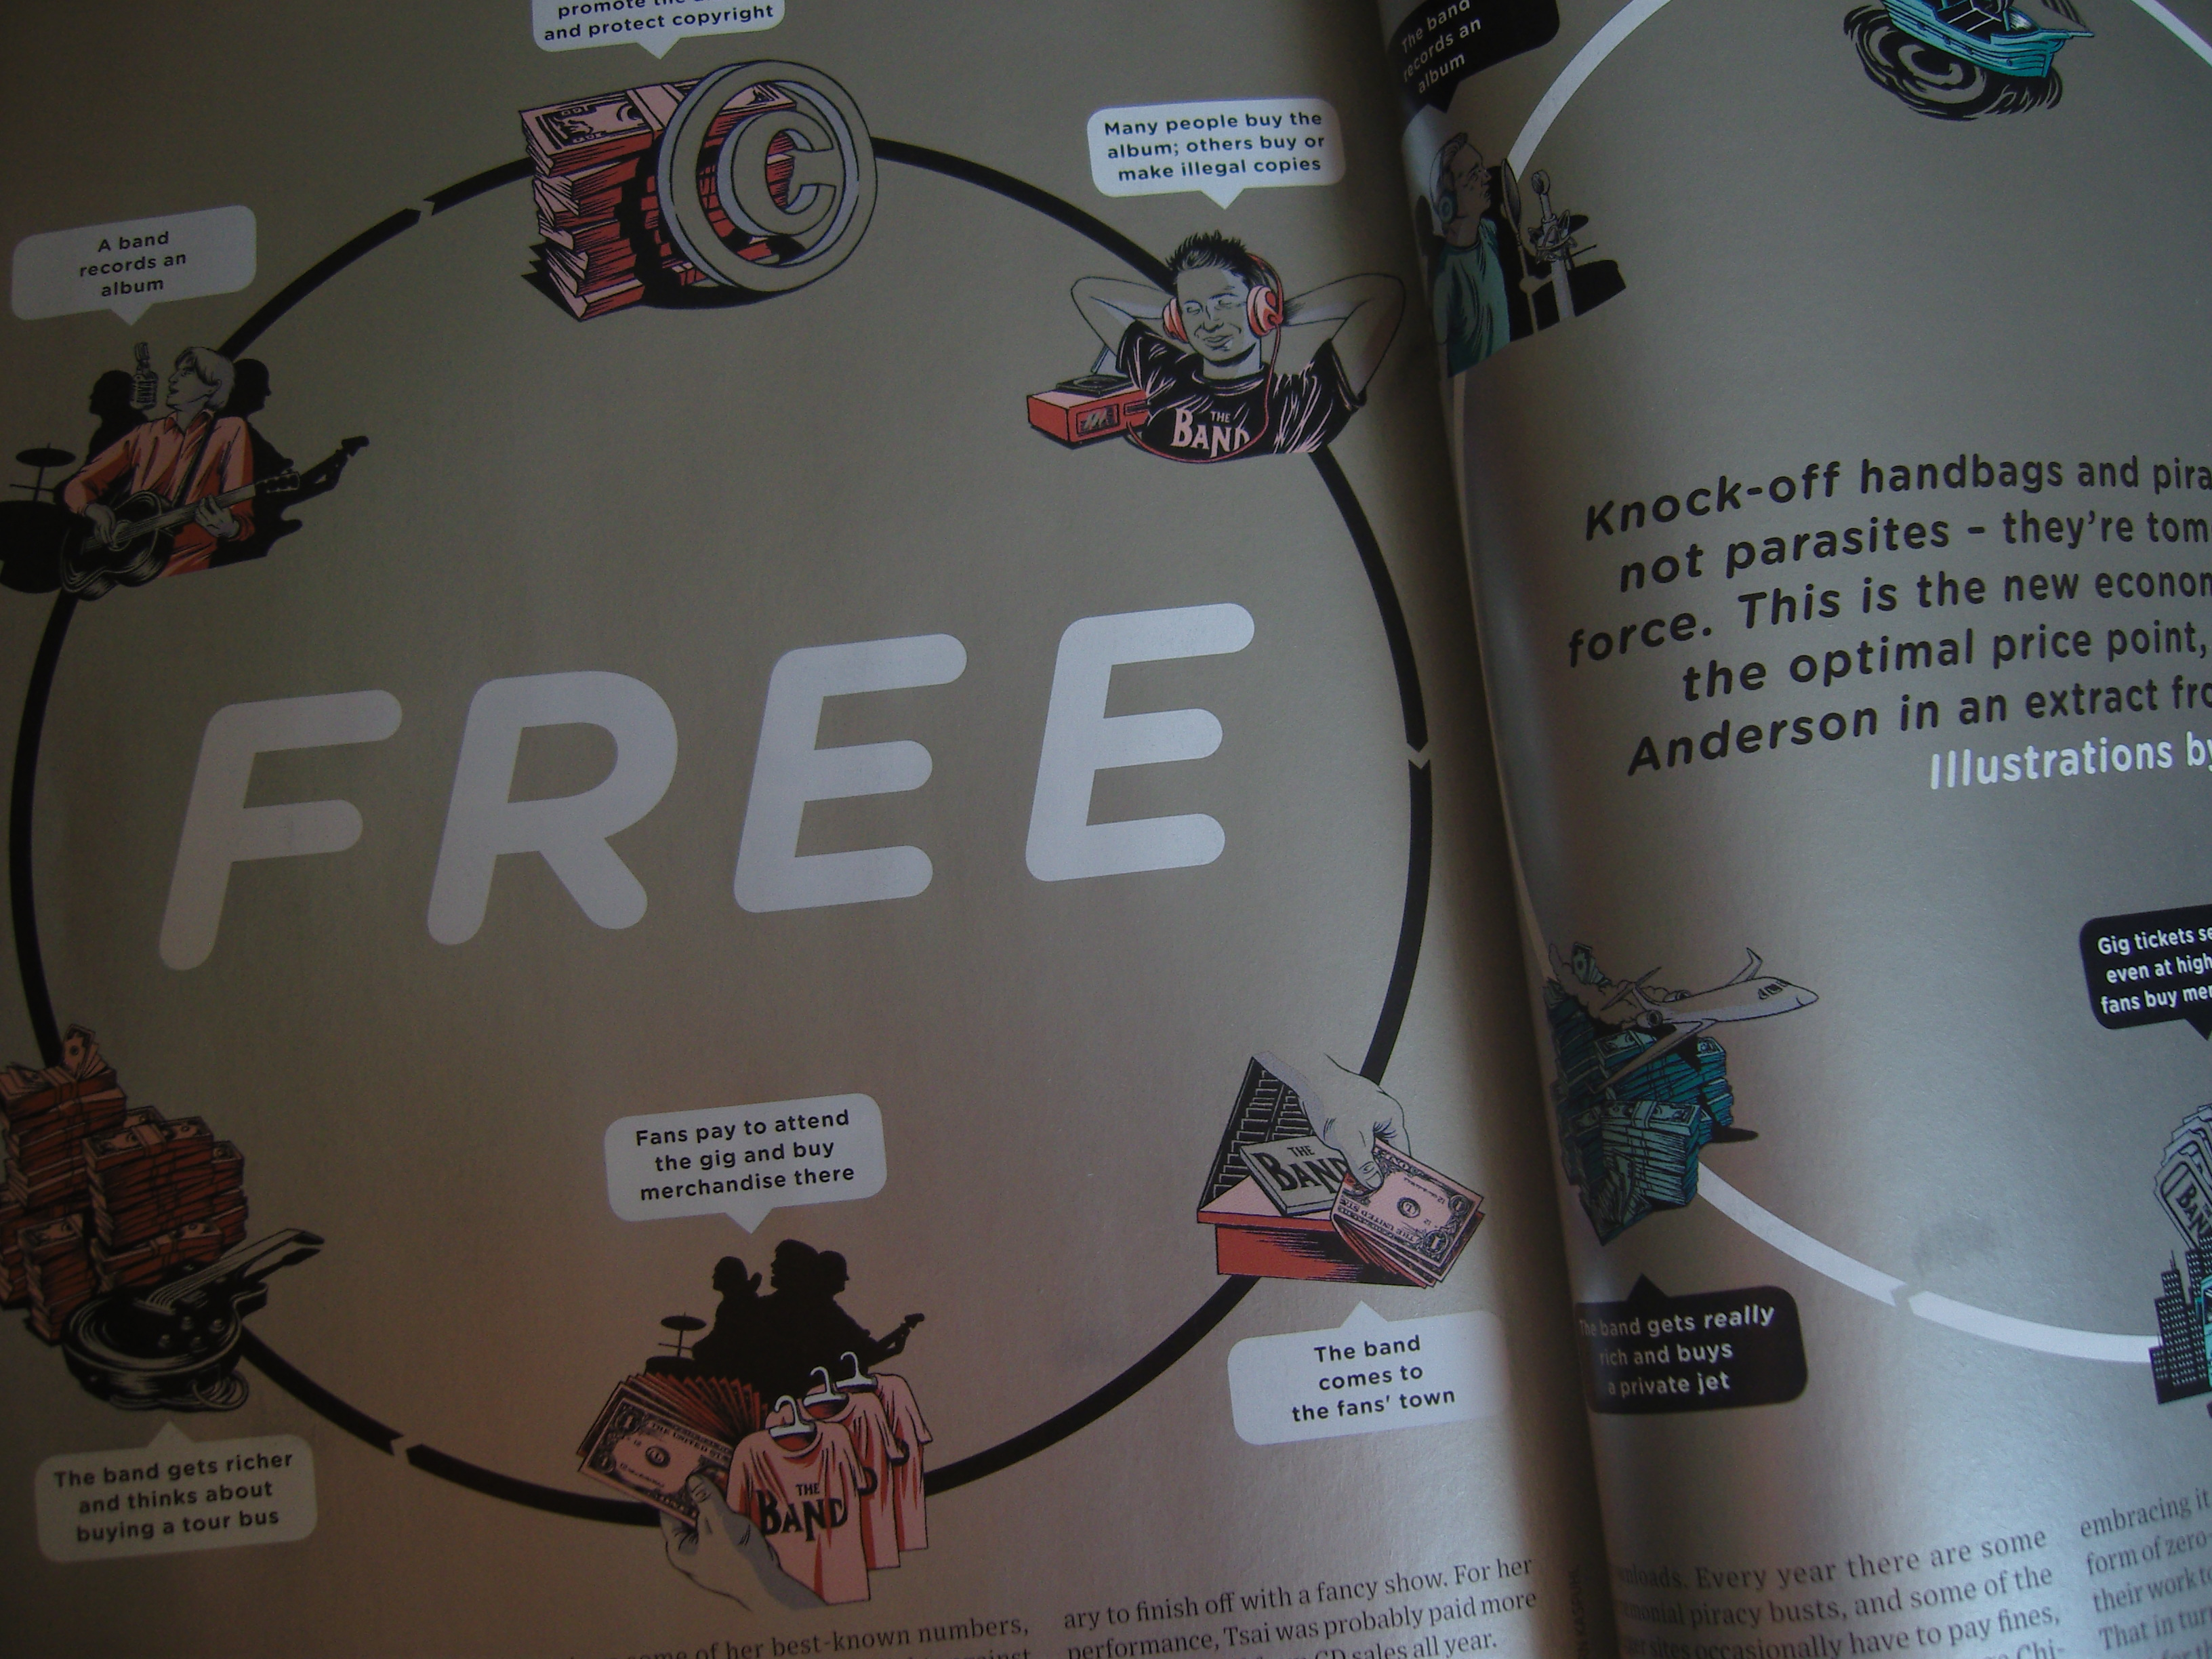 Wired Free! spread